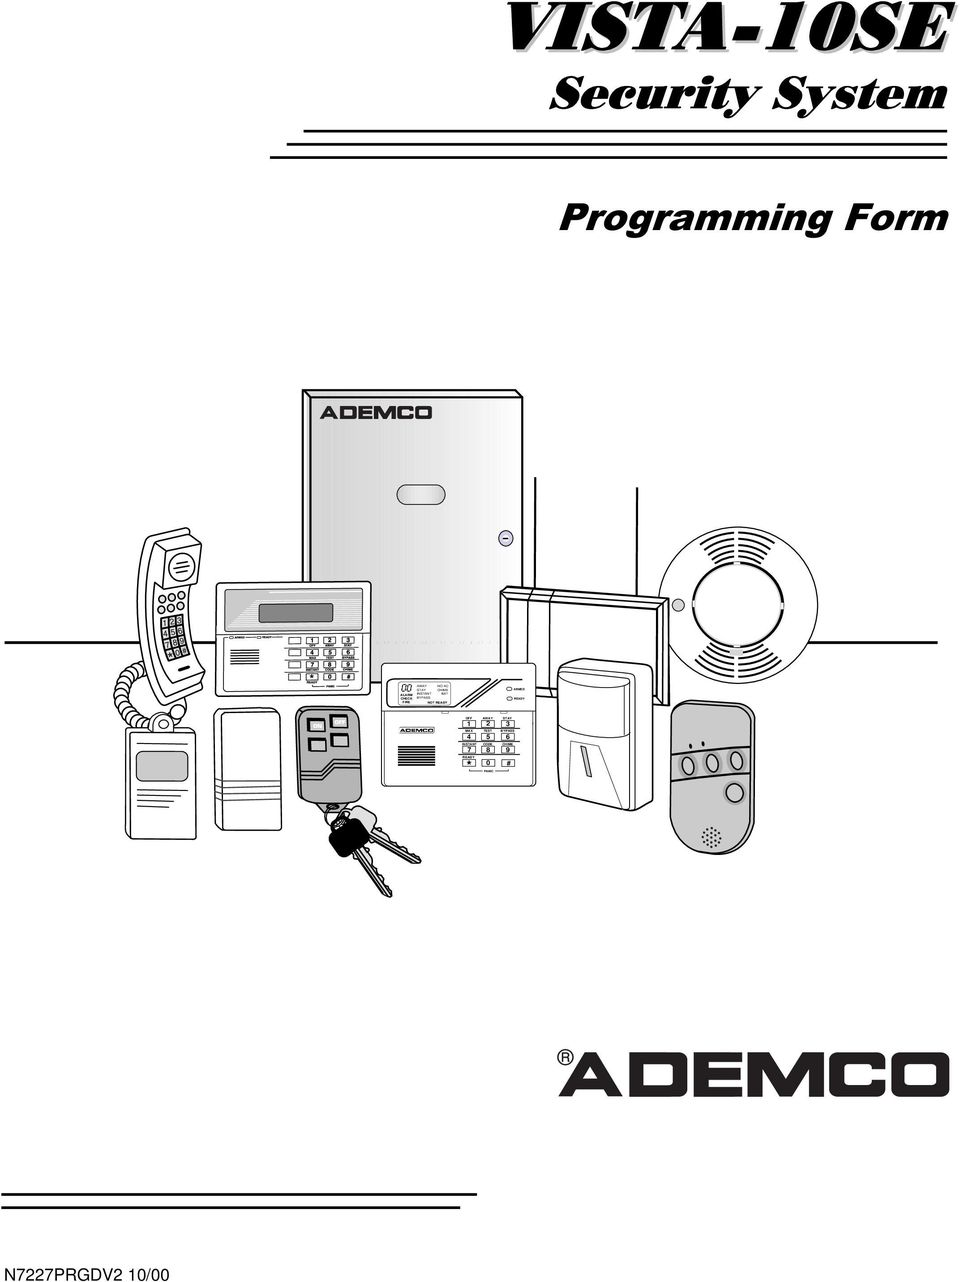 hight resolution of ademco alarm control panel wiring diagram alarm panel fire alarm wiring diagram adt home alarm wiring diagram